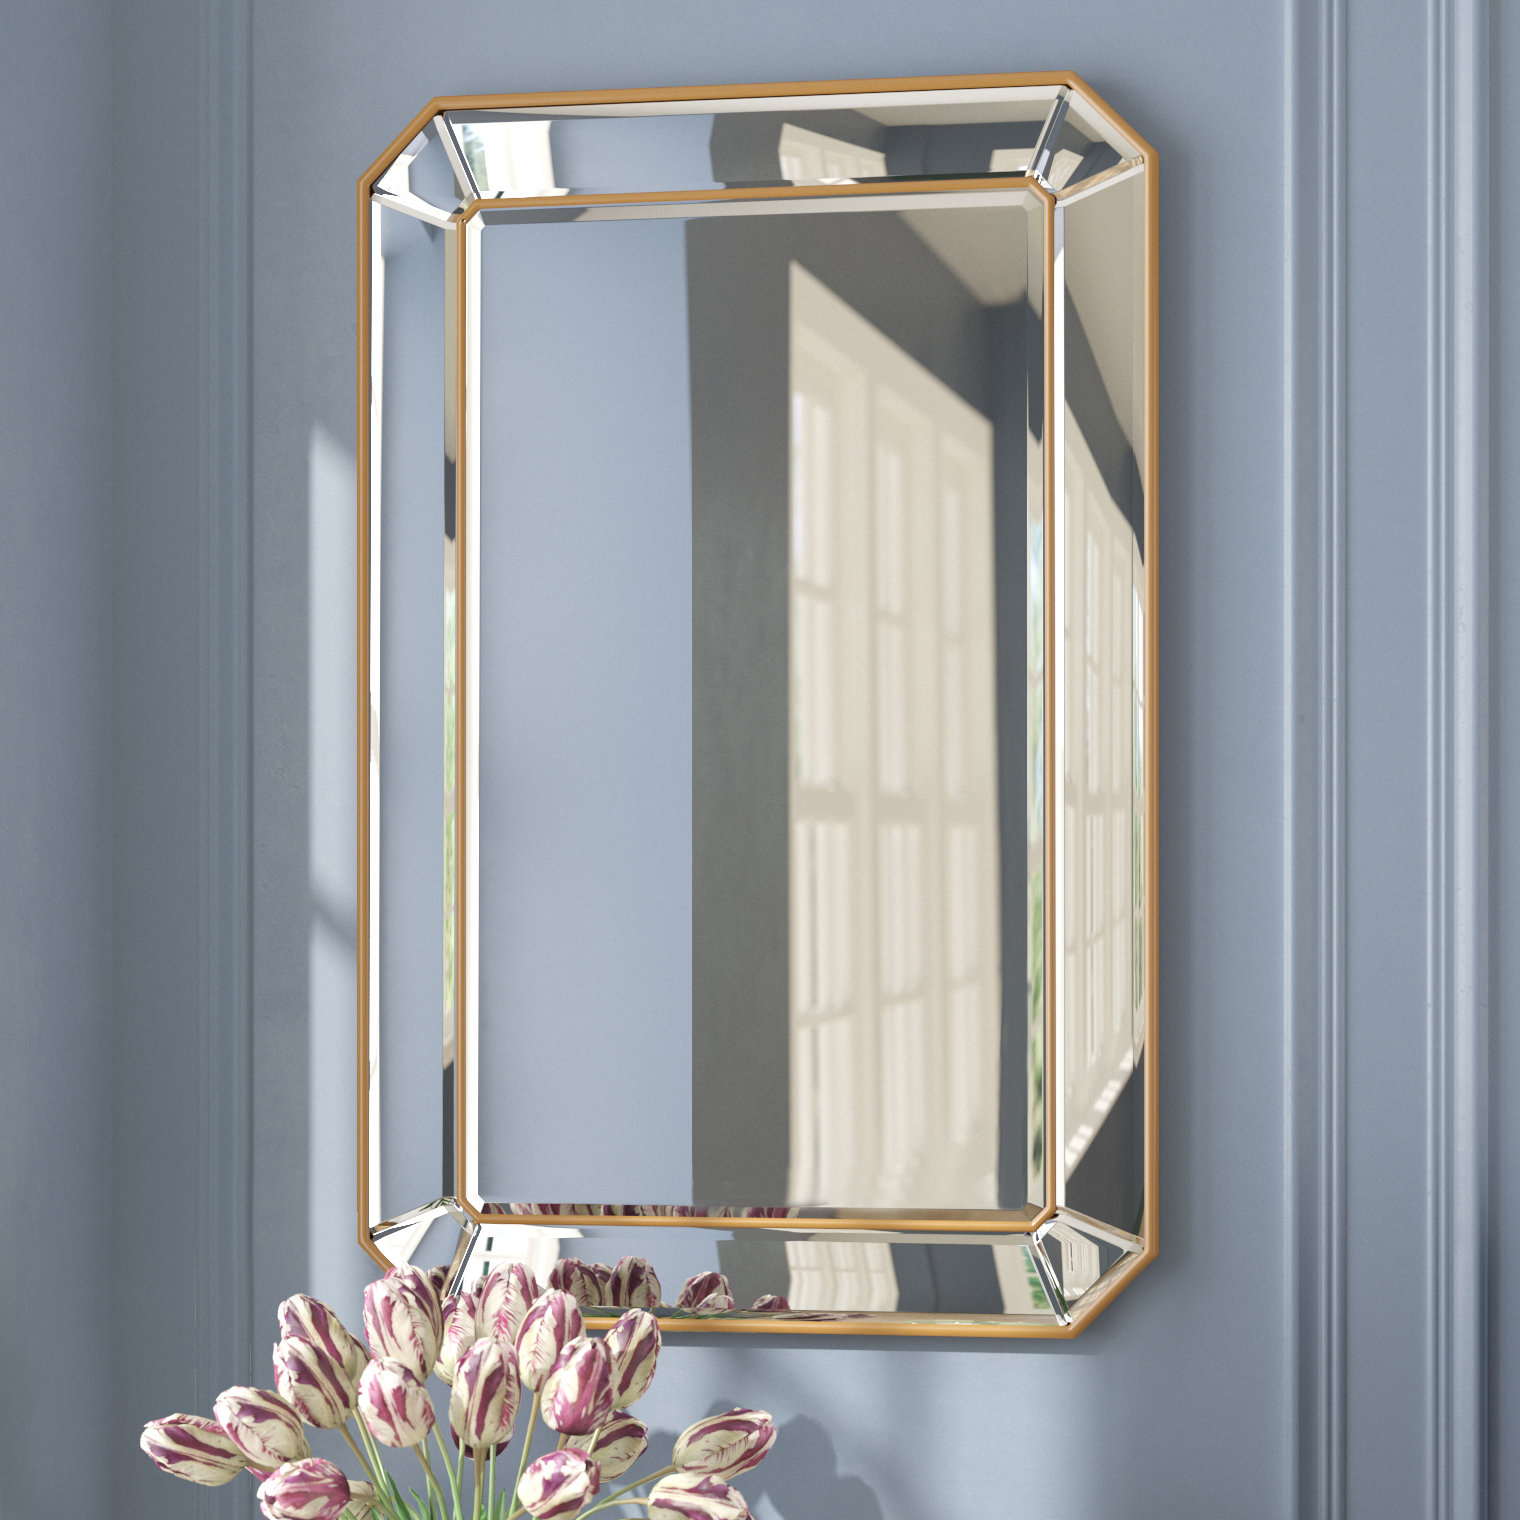 Willa Arlo Interiors Briley Rectangle Gold Angled Accent Intended For Rectangle Accent Wall Mirrors (View 4 of 20)